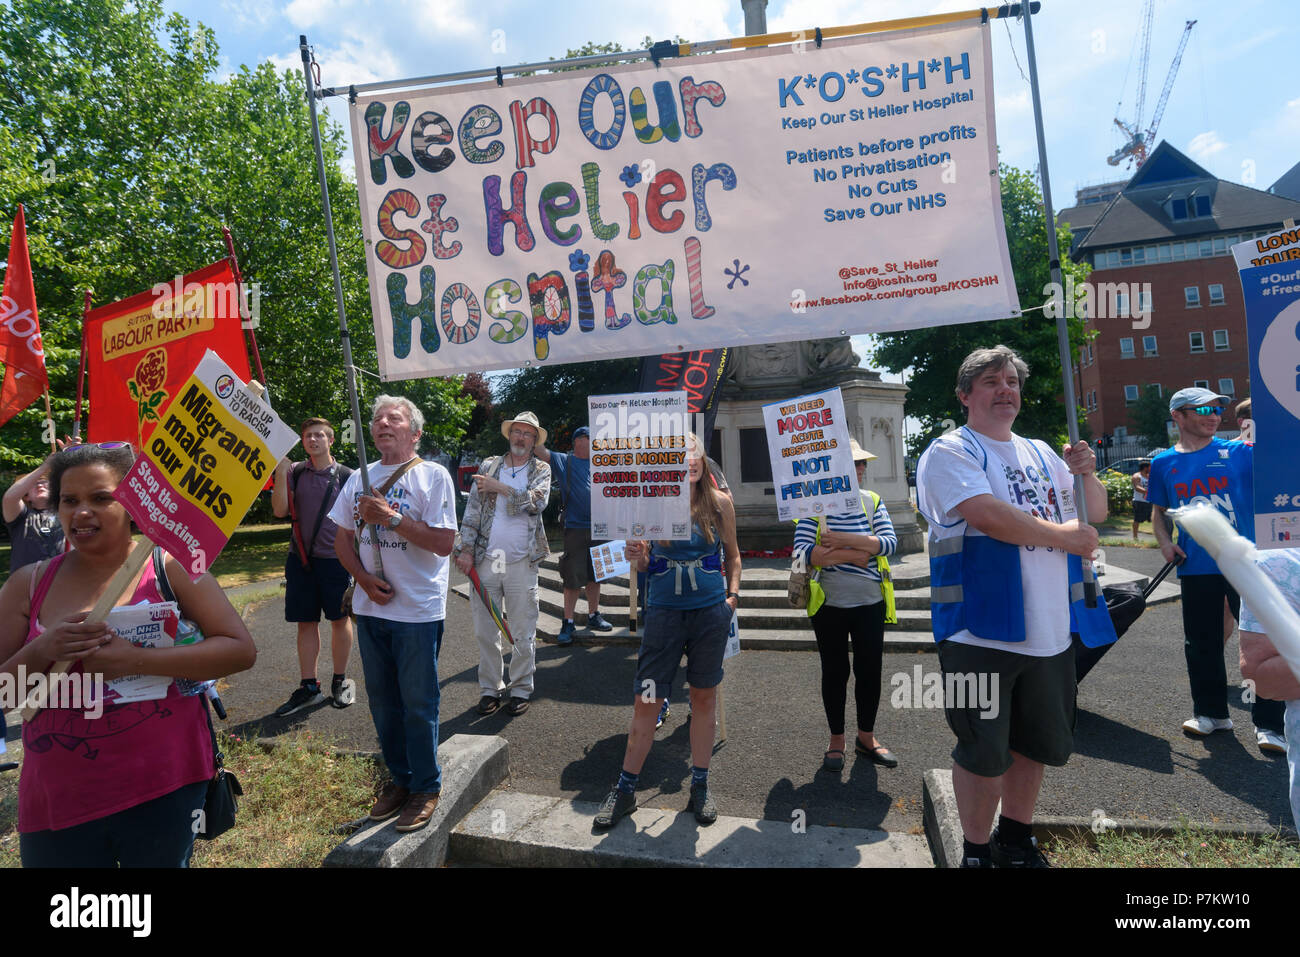 London, UK. 7th July 2018. Keep Our St Helier Hospital (KOSHH) campaigners against the closure of acute facilities at Epsom and St Helier Hospitals in south London pose before their march to celebrate the 70th Birthday of the NHS with a march from Sutton to a rally in front of St Helier Hospital.  The closures are prompted by government cuts which call for huge savings by the trust, and would Credit: Peter Marshall/Alamy Live NewsStock Photo